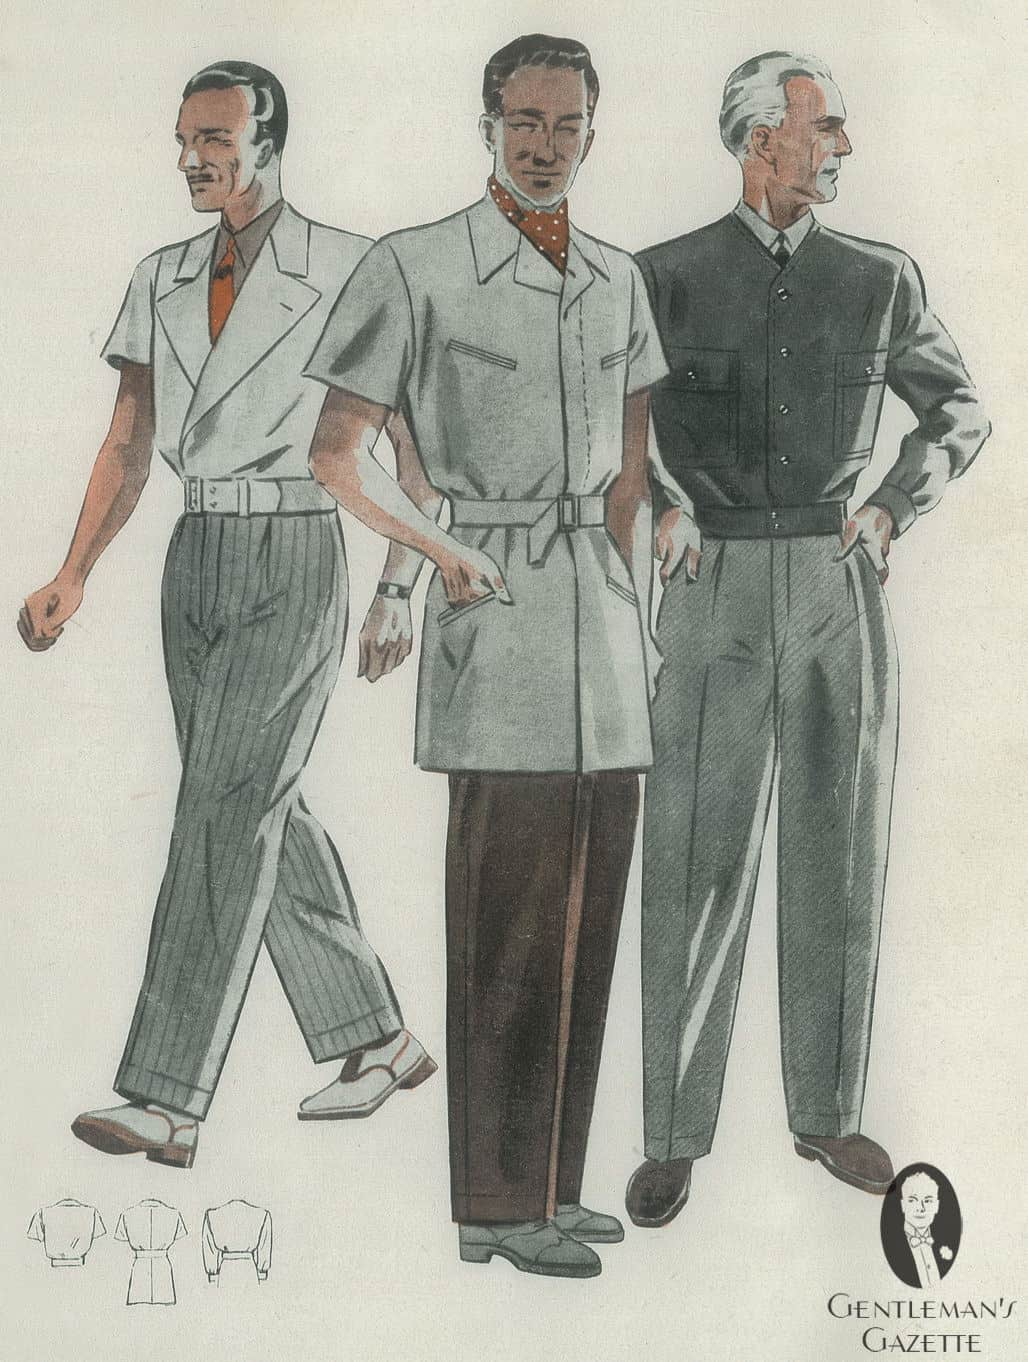 Men S Fashion 1930s: Men's Summer Fashion & How To Dress In The Thirties